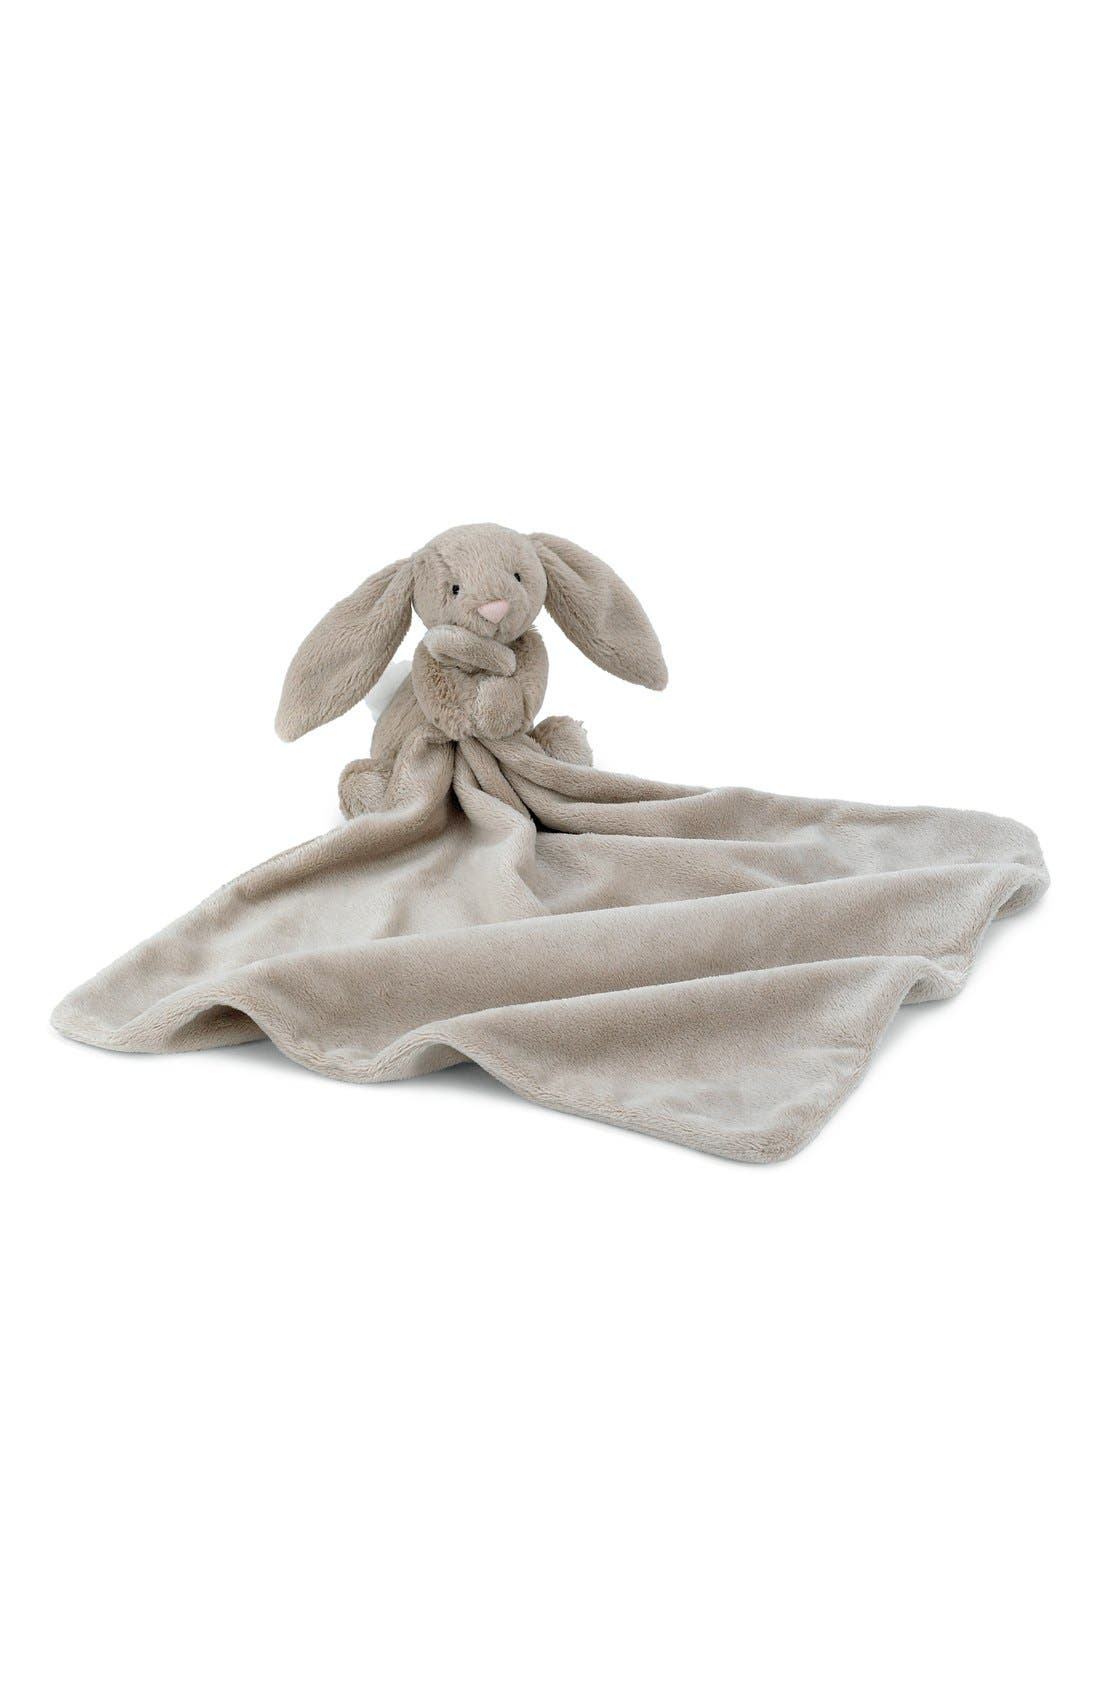 'Bunny Soother' Blanket,                             Main thumbnail 1, color,                             BEIGE